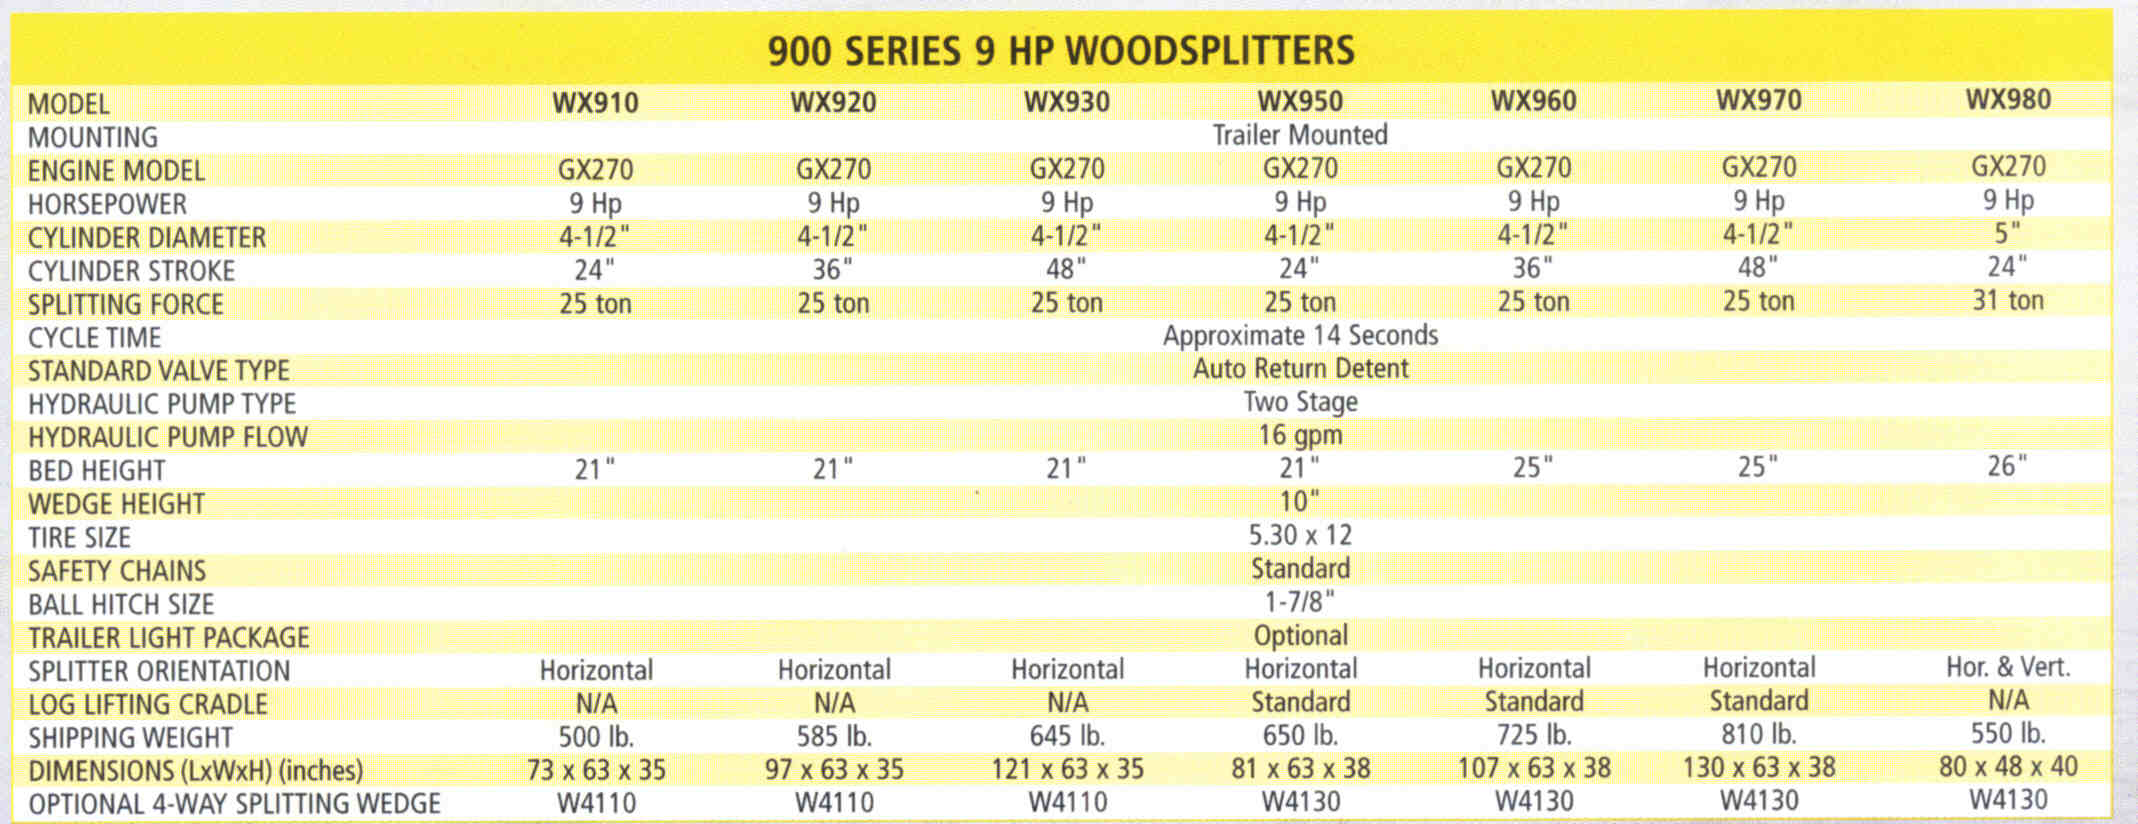 Specifications - 900 Series Trailer Mounted/Engine Powered Logsplitters